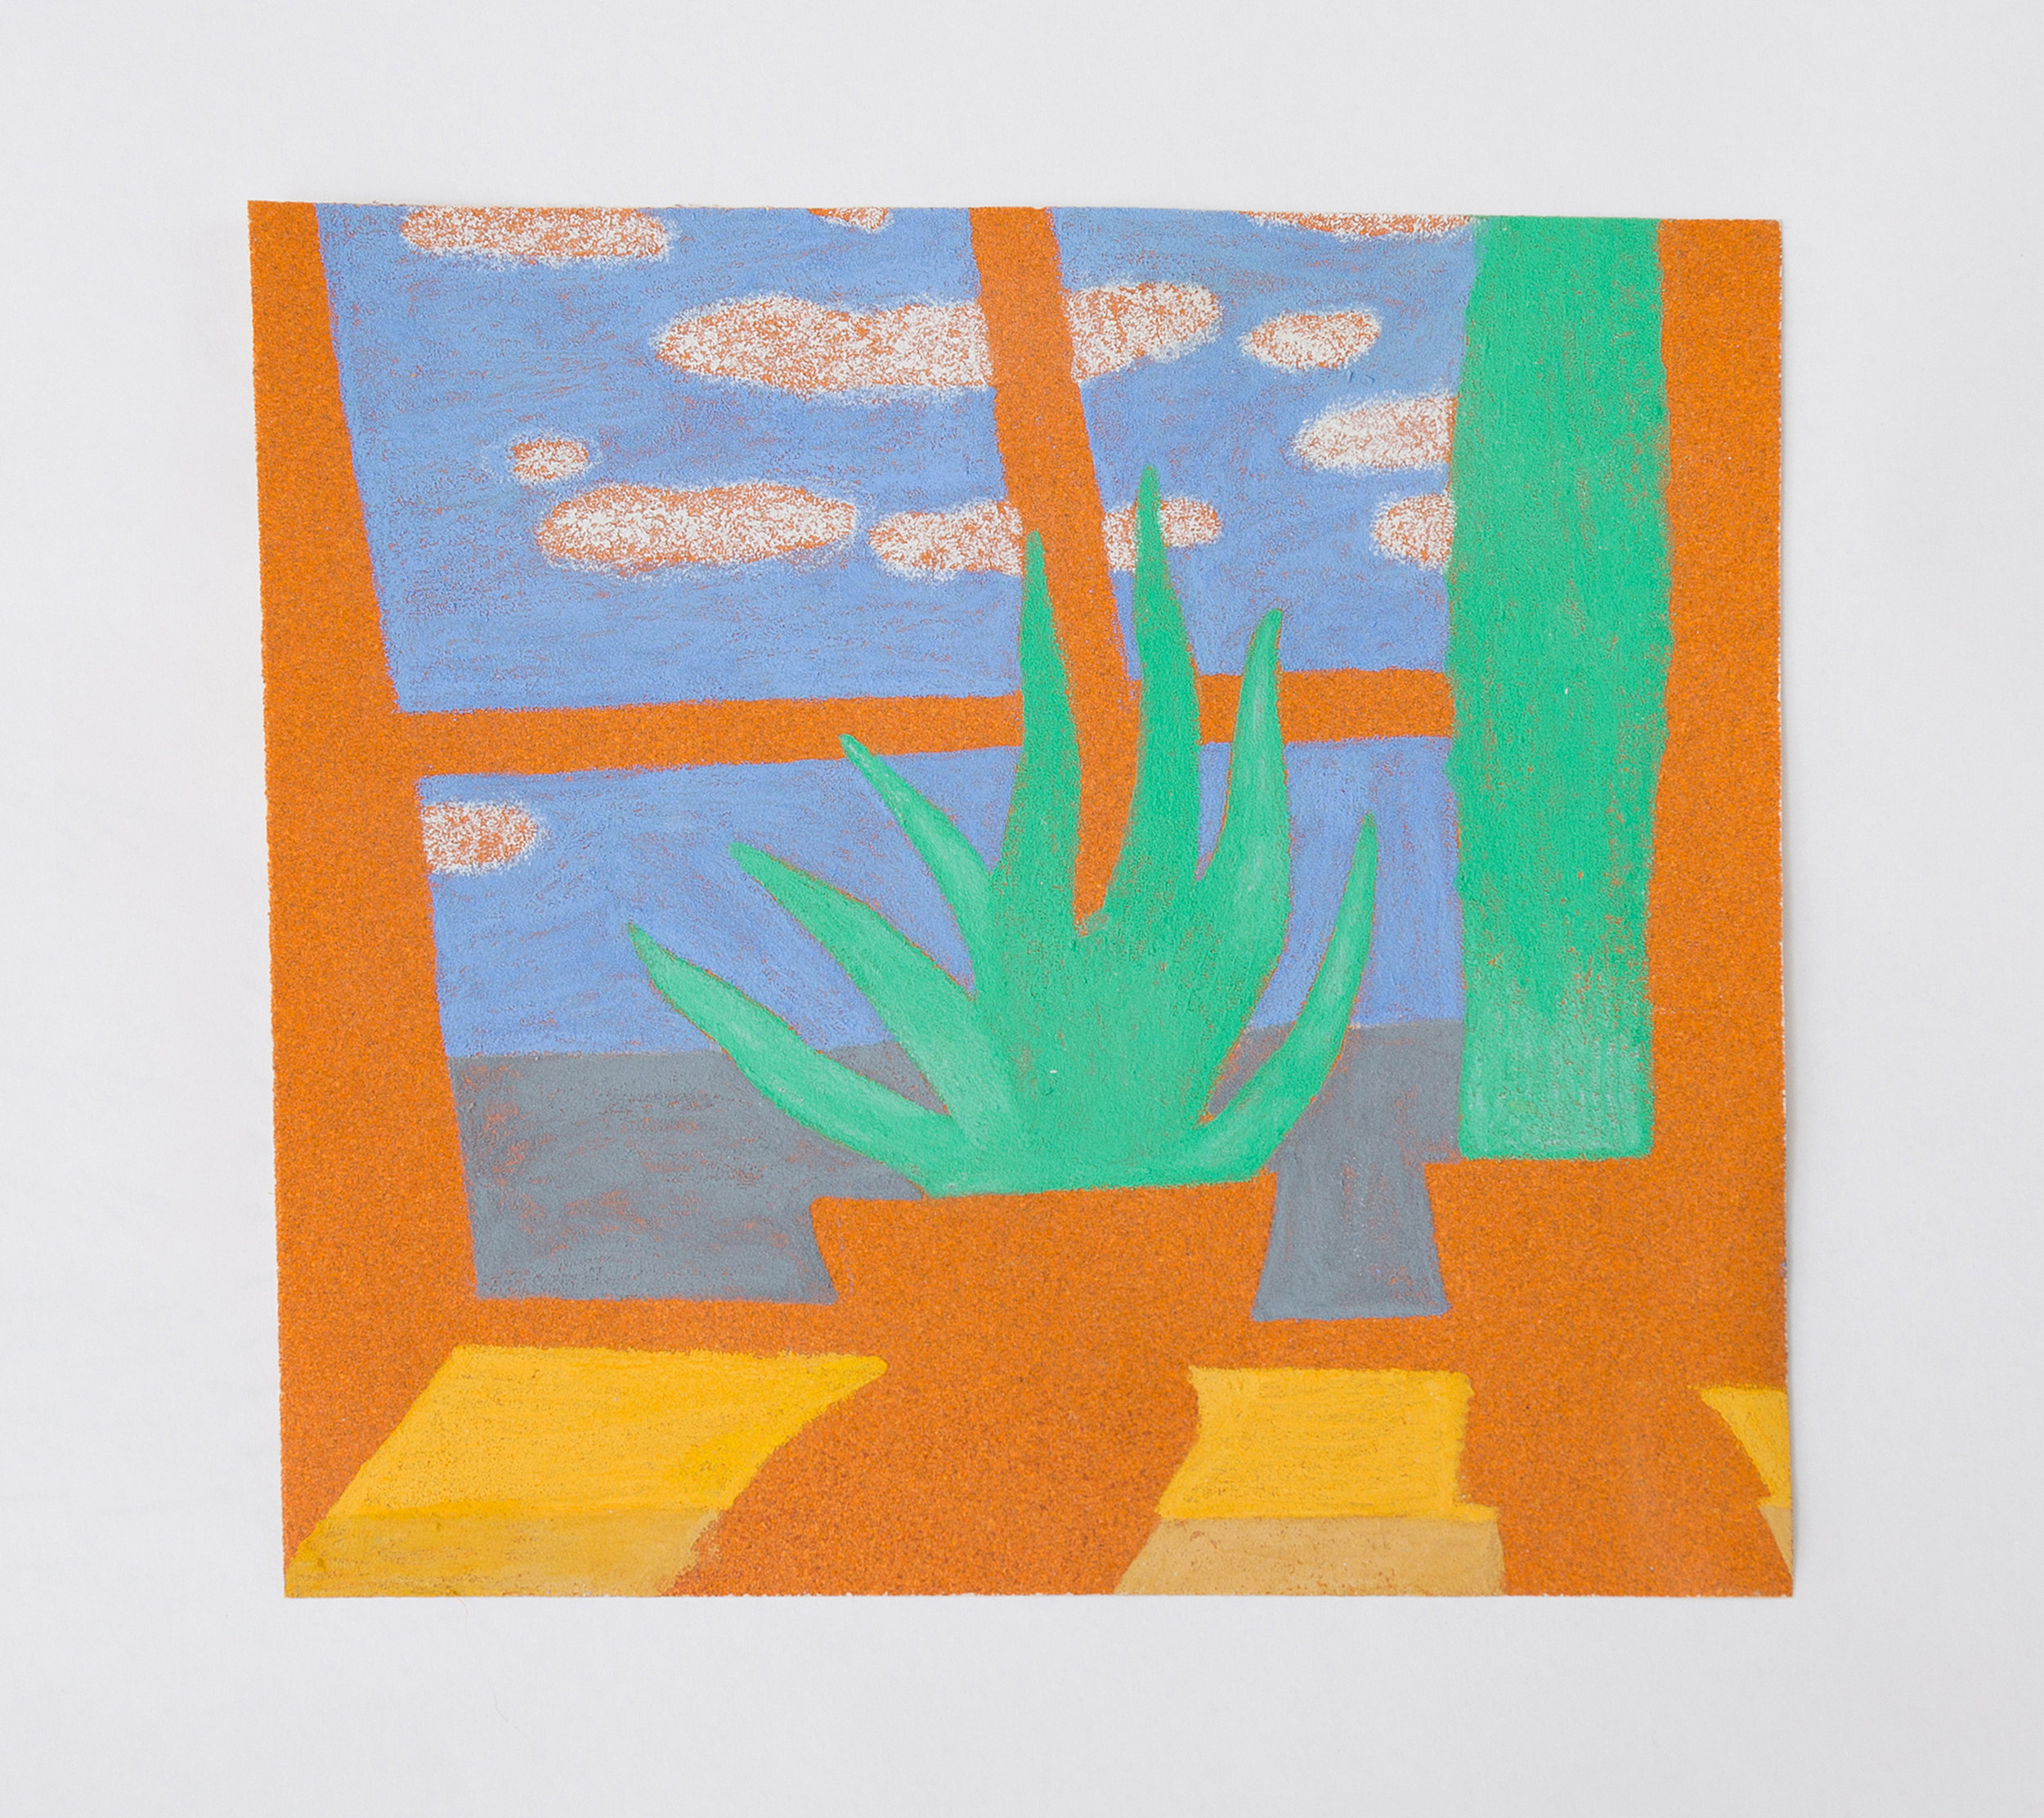 """Avery's Window  2016 Colored pencil and sandpaper on panel 7 3/4"""" x 8""""x 1/2"""""""